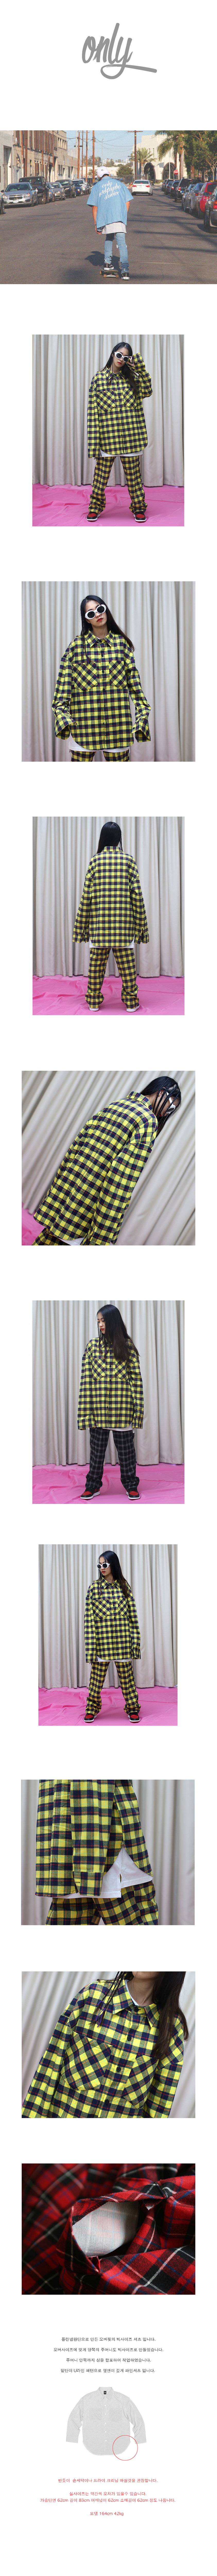 Flannel%20shirt-yellow.jpg